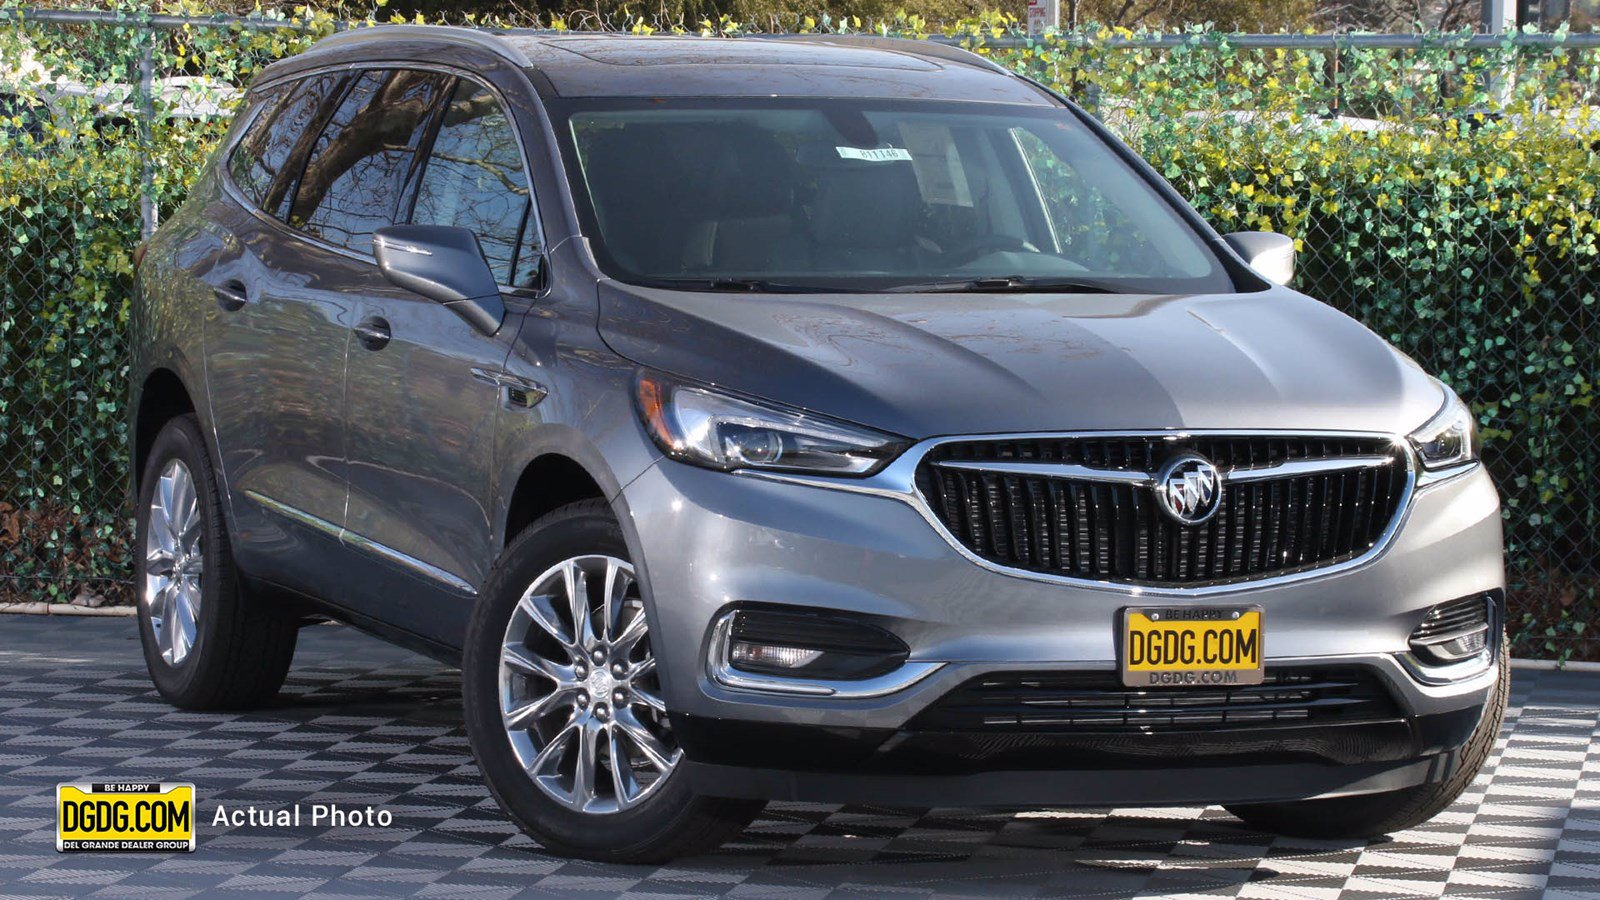 2020 Buick Enclave Essence Fwd 4D Sport Utility New 2022 Buick Enclave Length, Leather, Lease Price